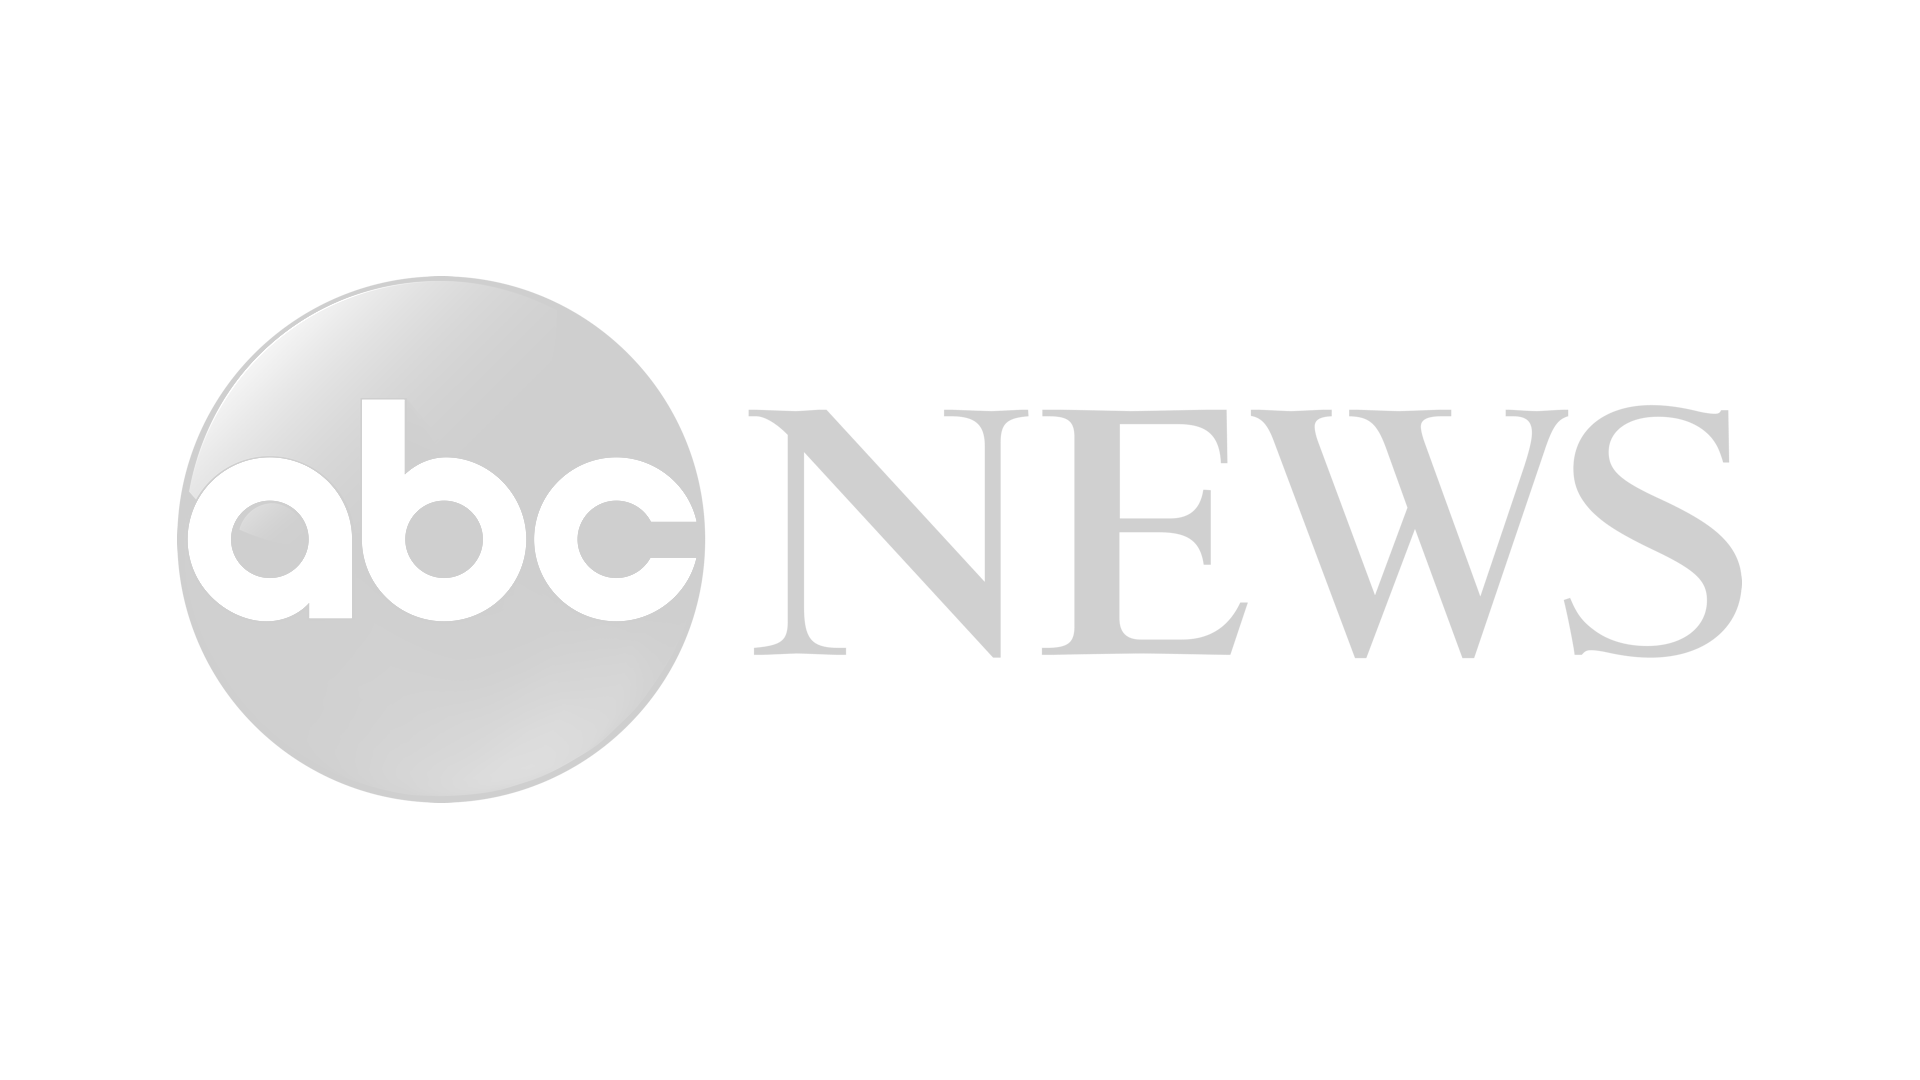 abc-logo-png-4.png